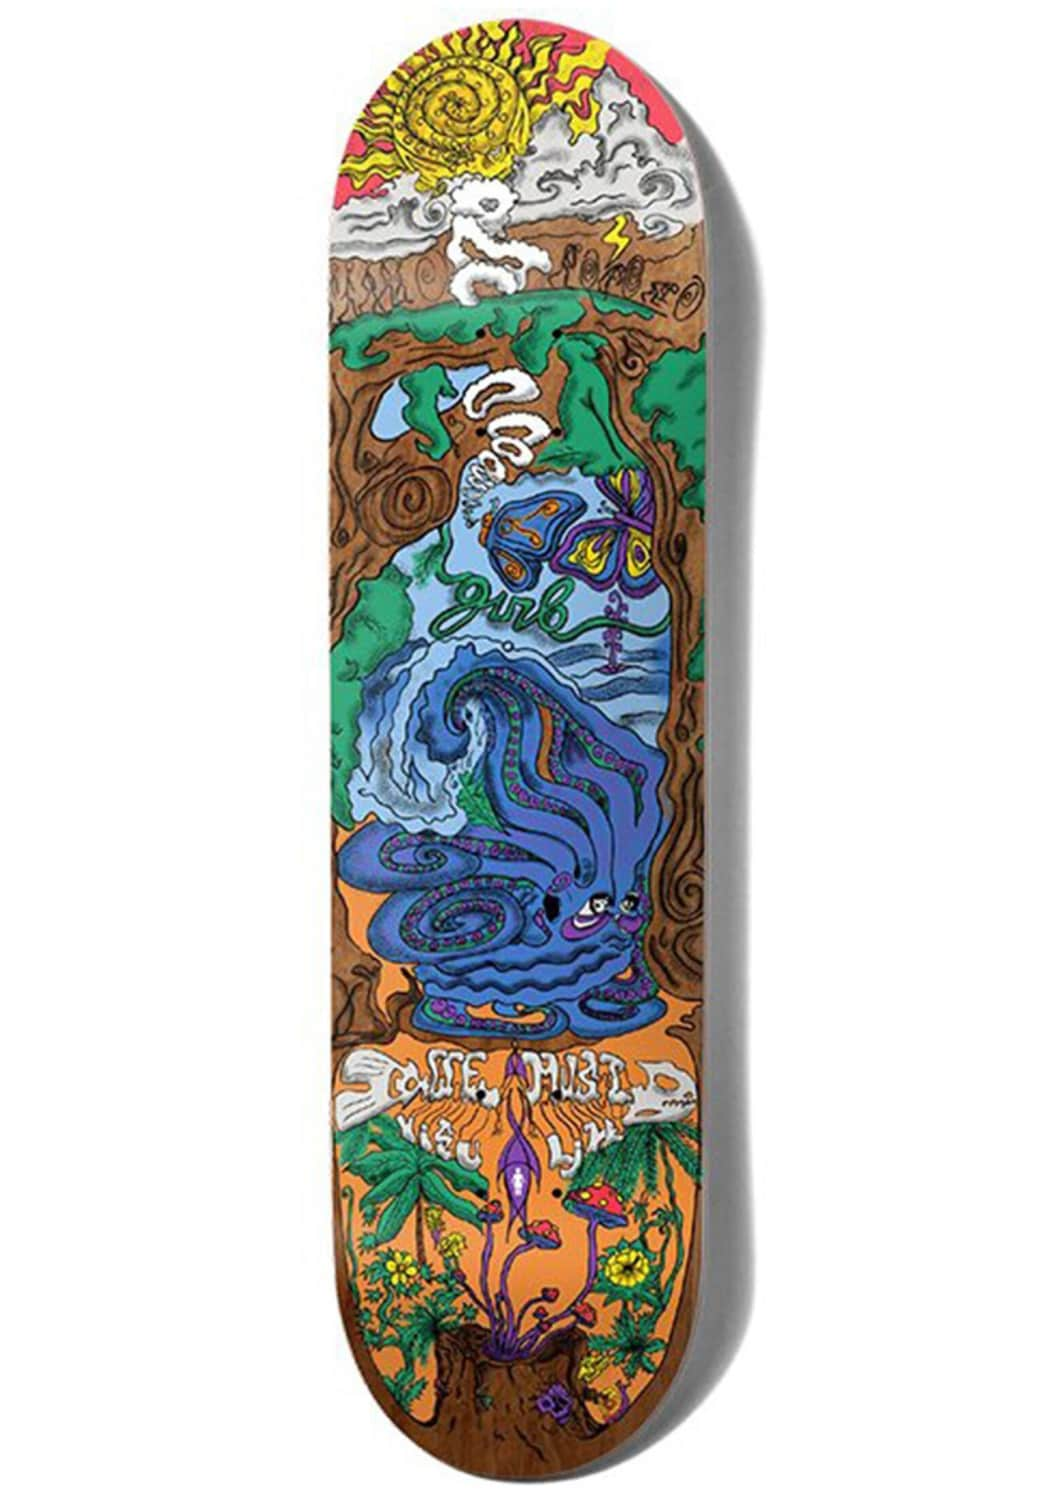 Girl Simon Bannerot We Must Visualize Skateboard Deck - 8.25"